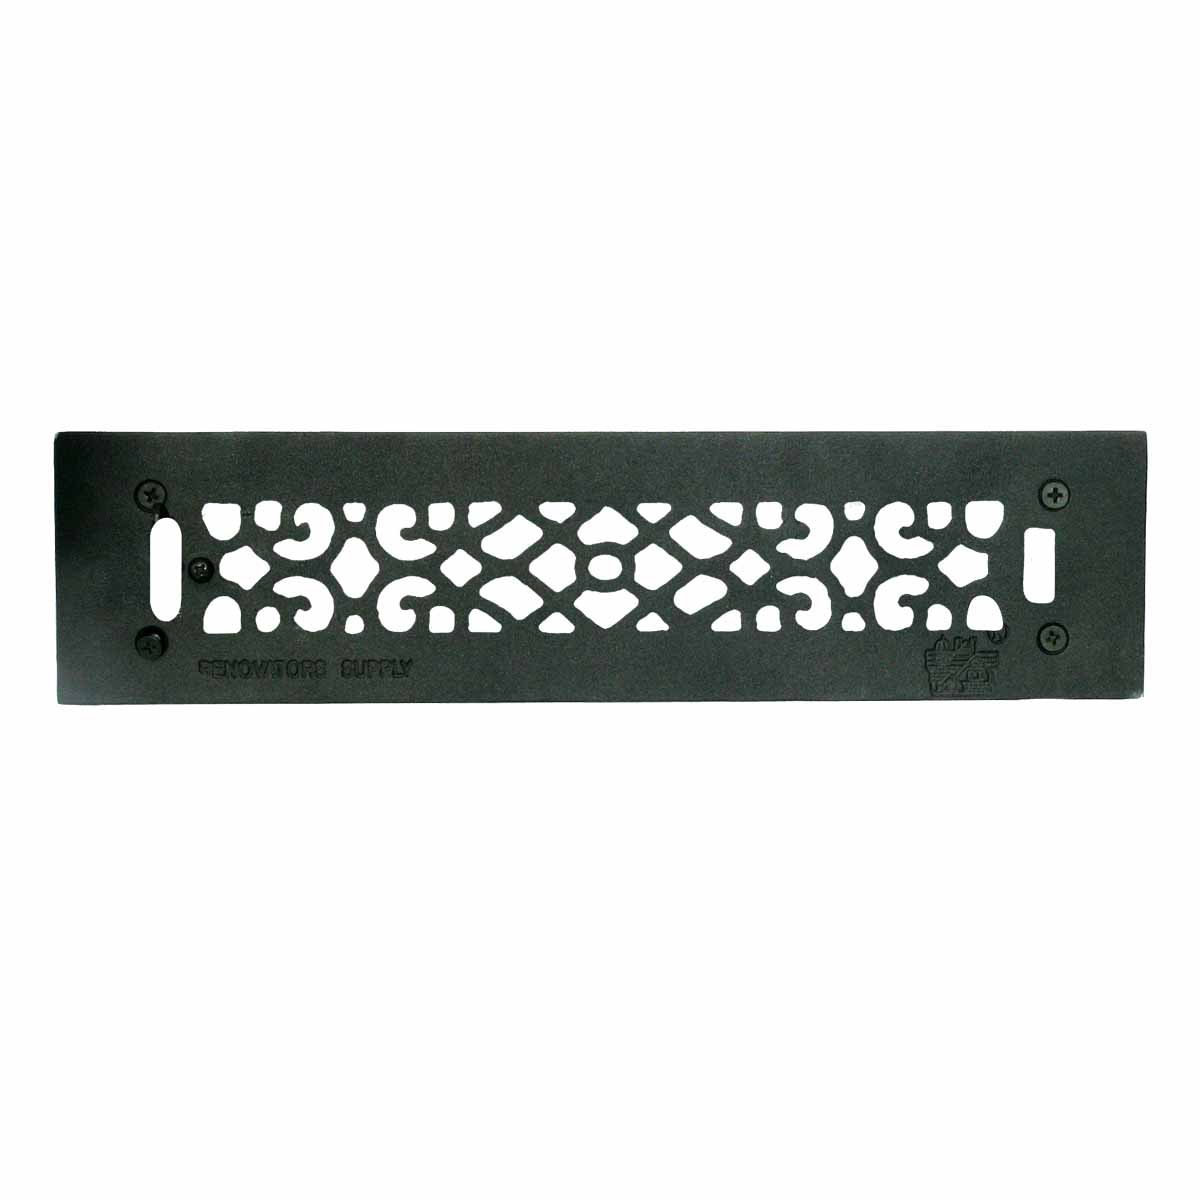 Floor Heat Register Louver Vent Cast 2 1/4 x 14 Duct | Renovator's Supply